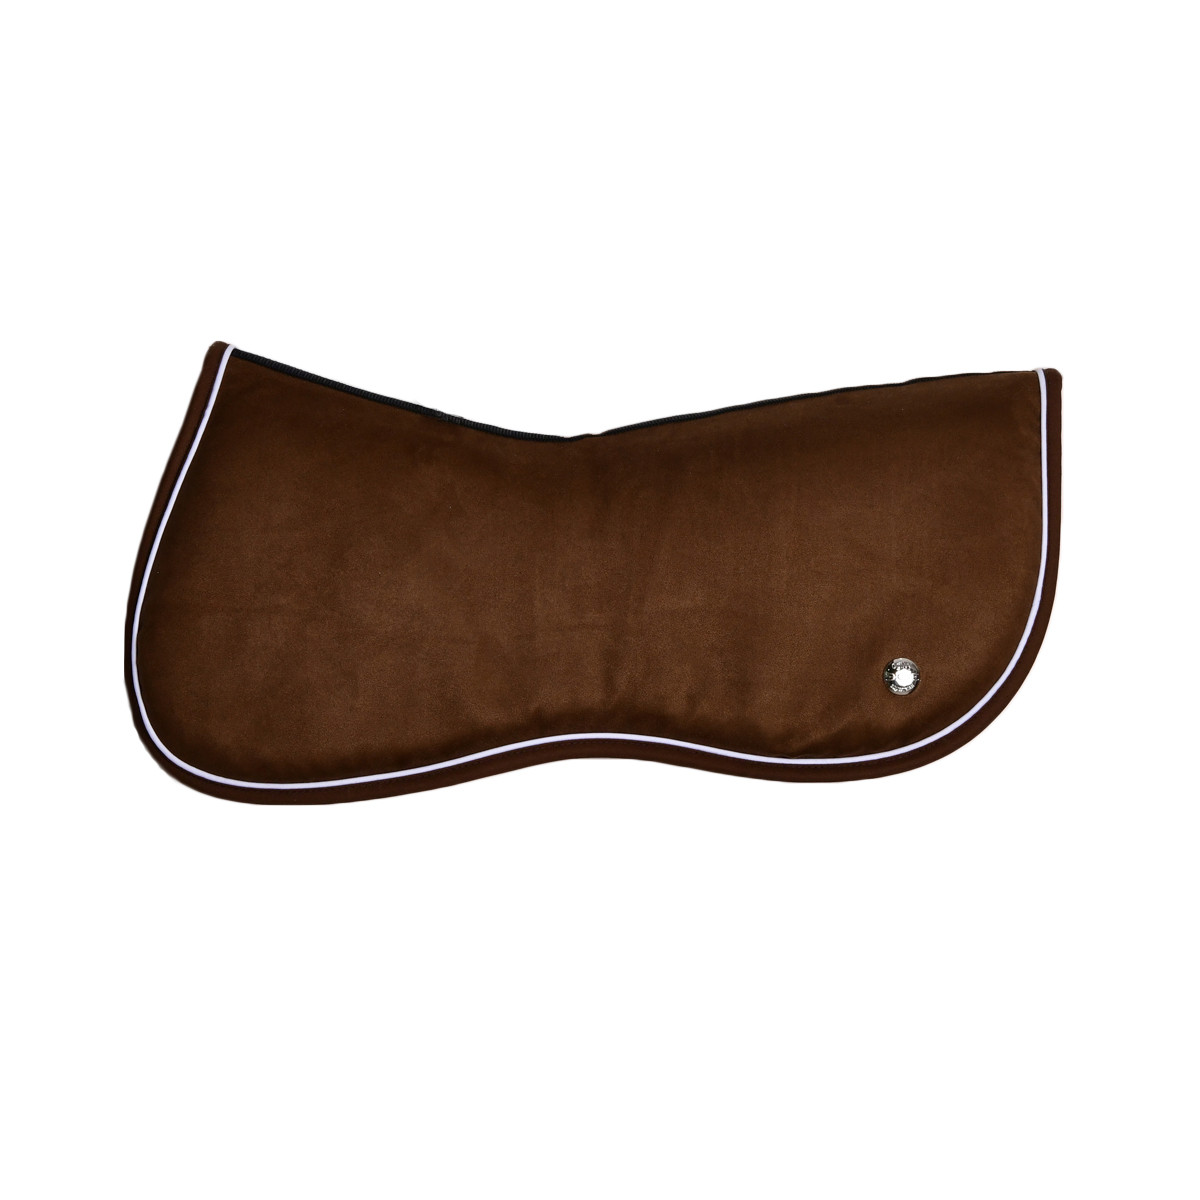 Ogilvy Jump Gummy Half Pad Chocolate/White/Chocolate